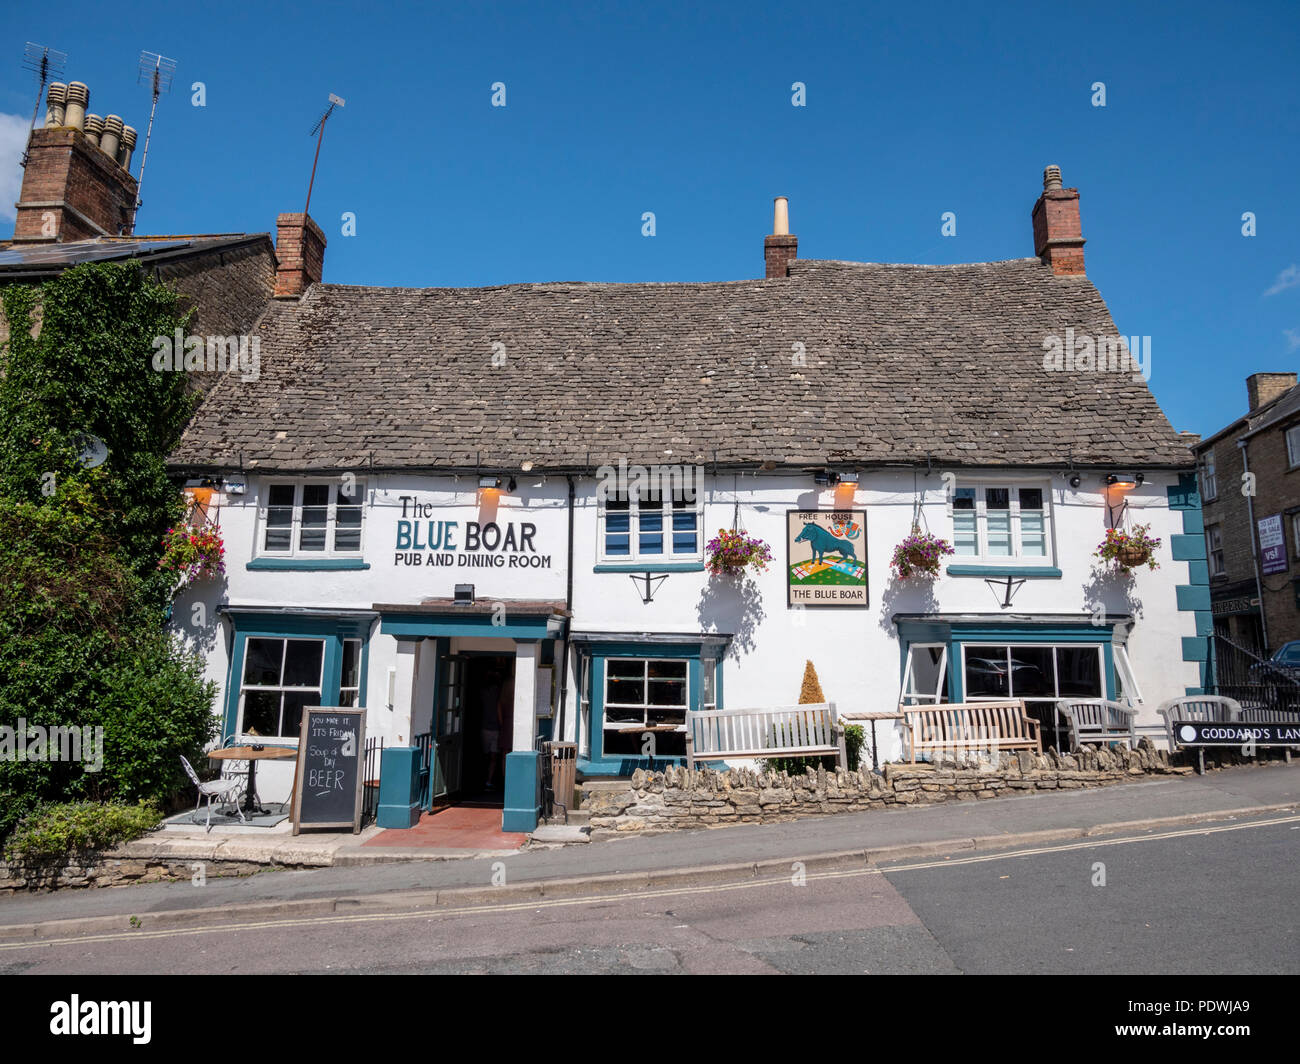 Le pub du Blue Boar et salle à manger, Chipping Norton Oxfordshire, UK Photo Stock